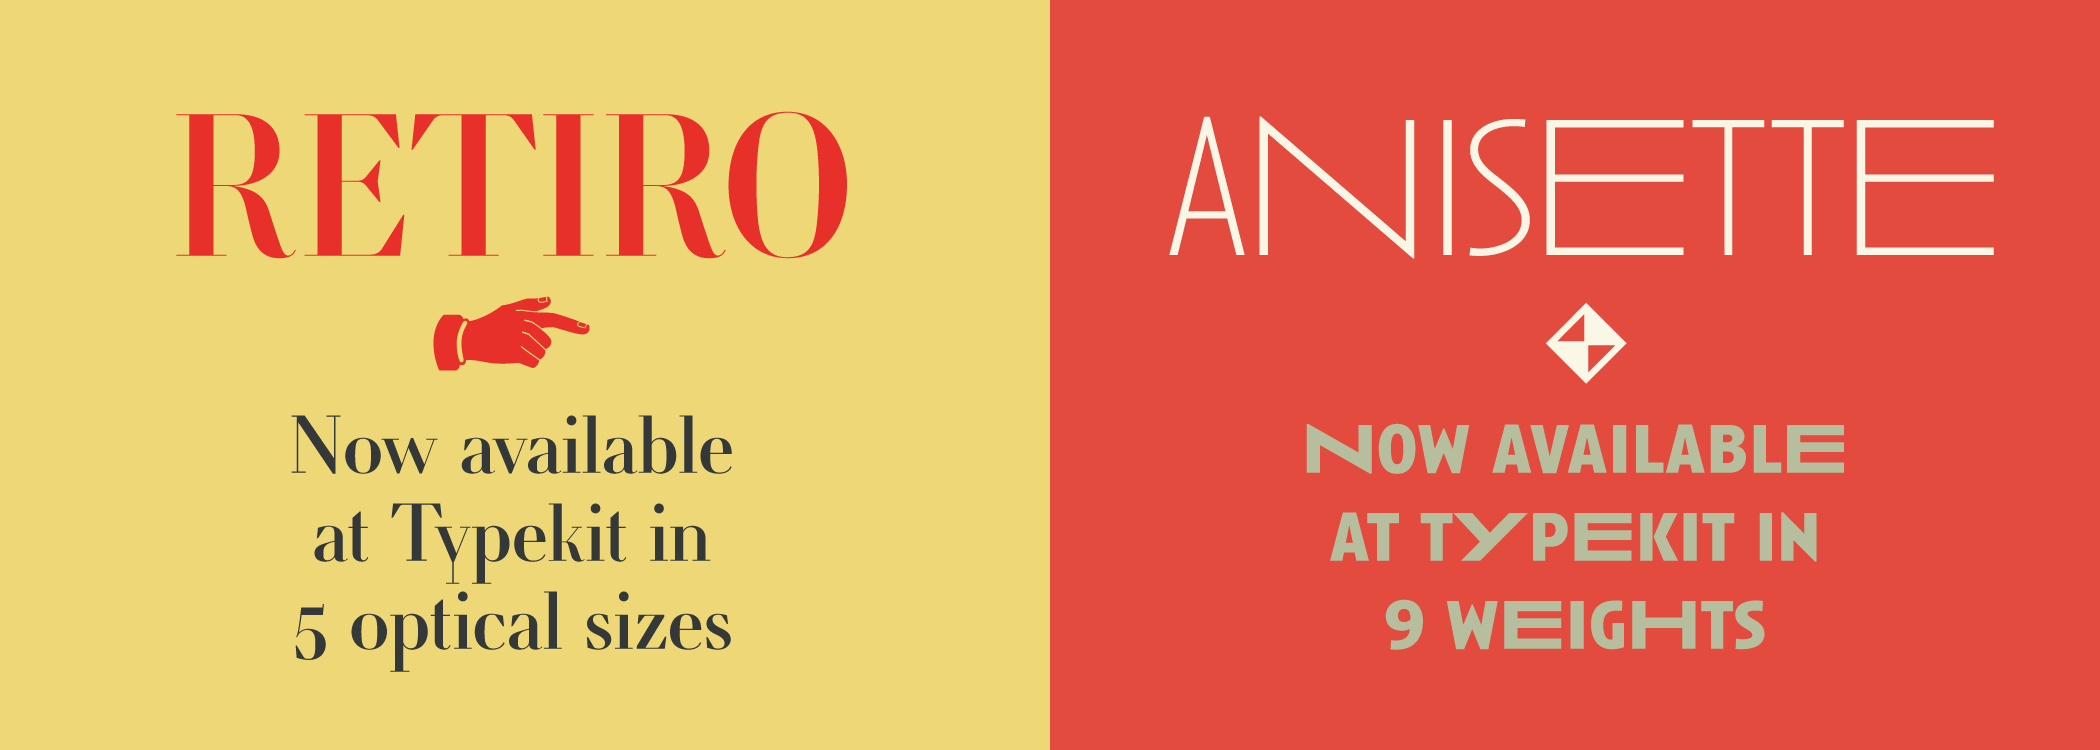 Retiro and Anisette now available via Typekit